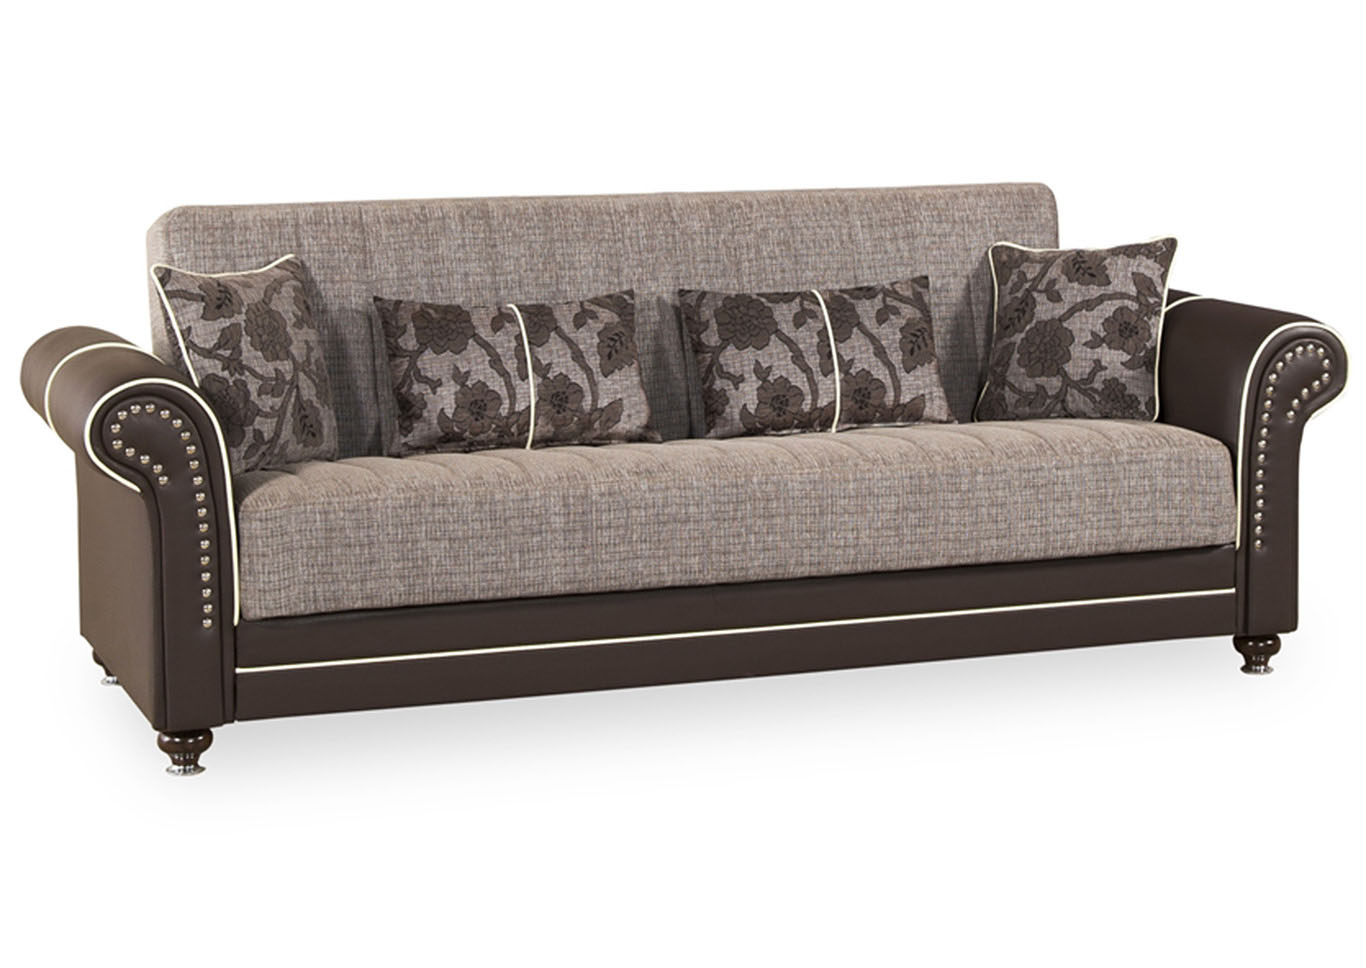 Royal Home Quantro Brown Chenille Sofabed,CasaMode Functional Furniture